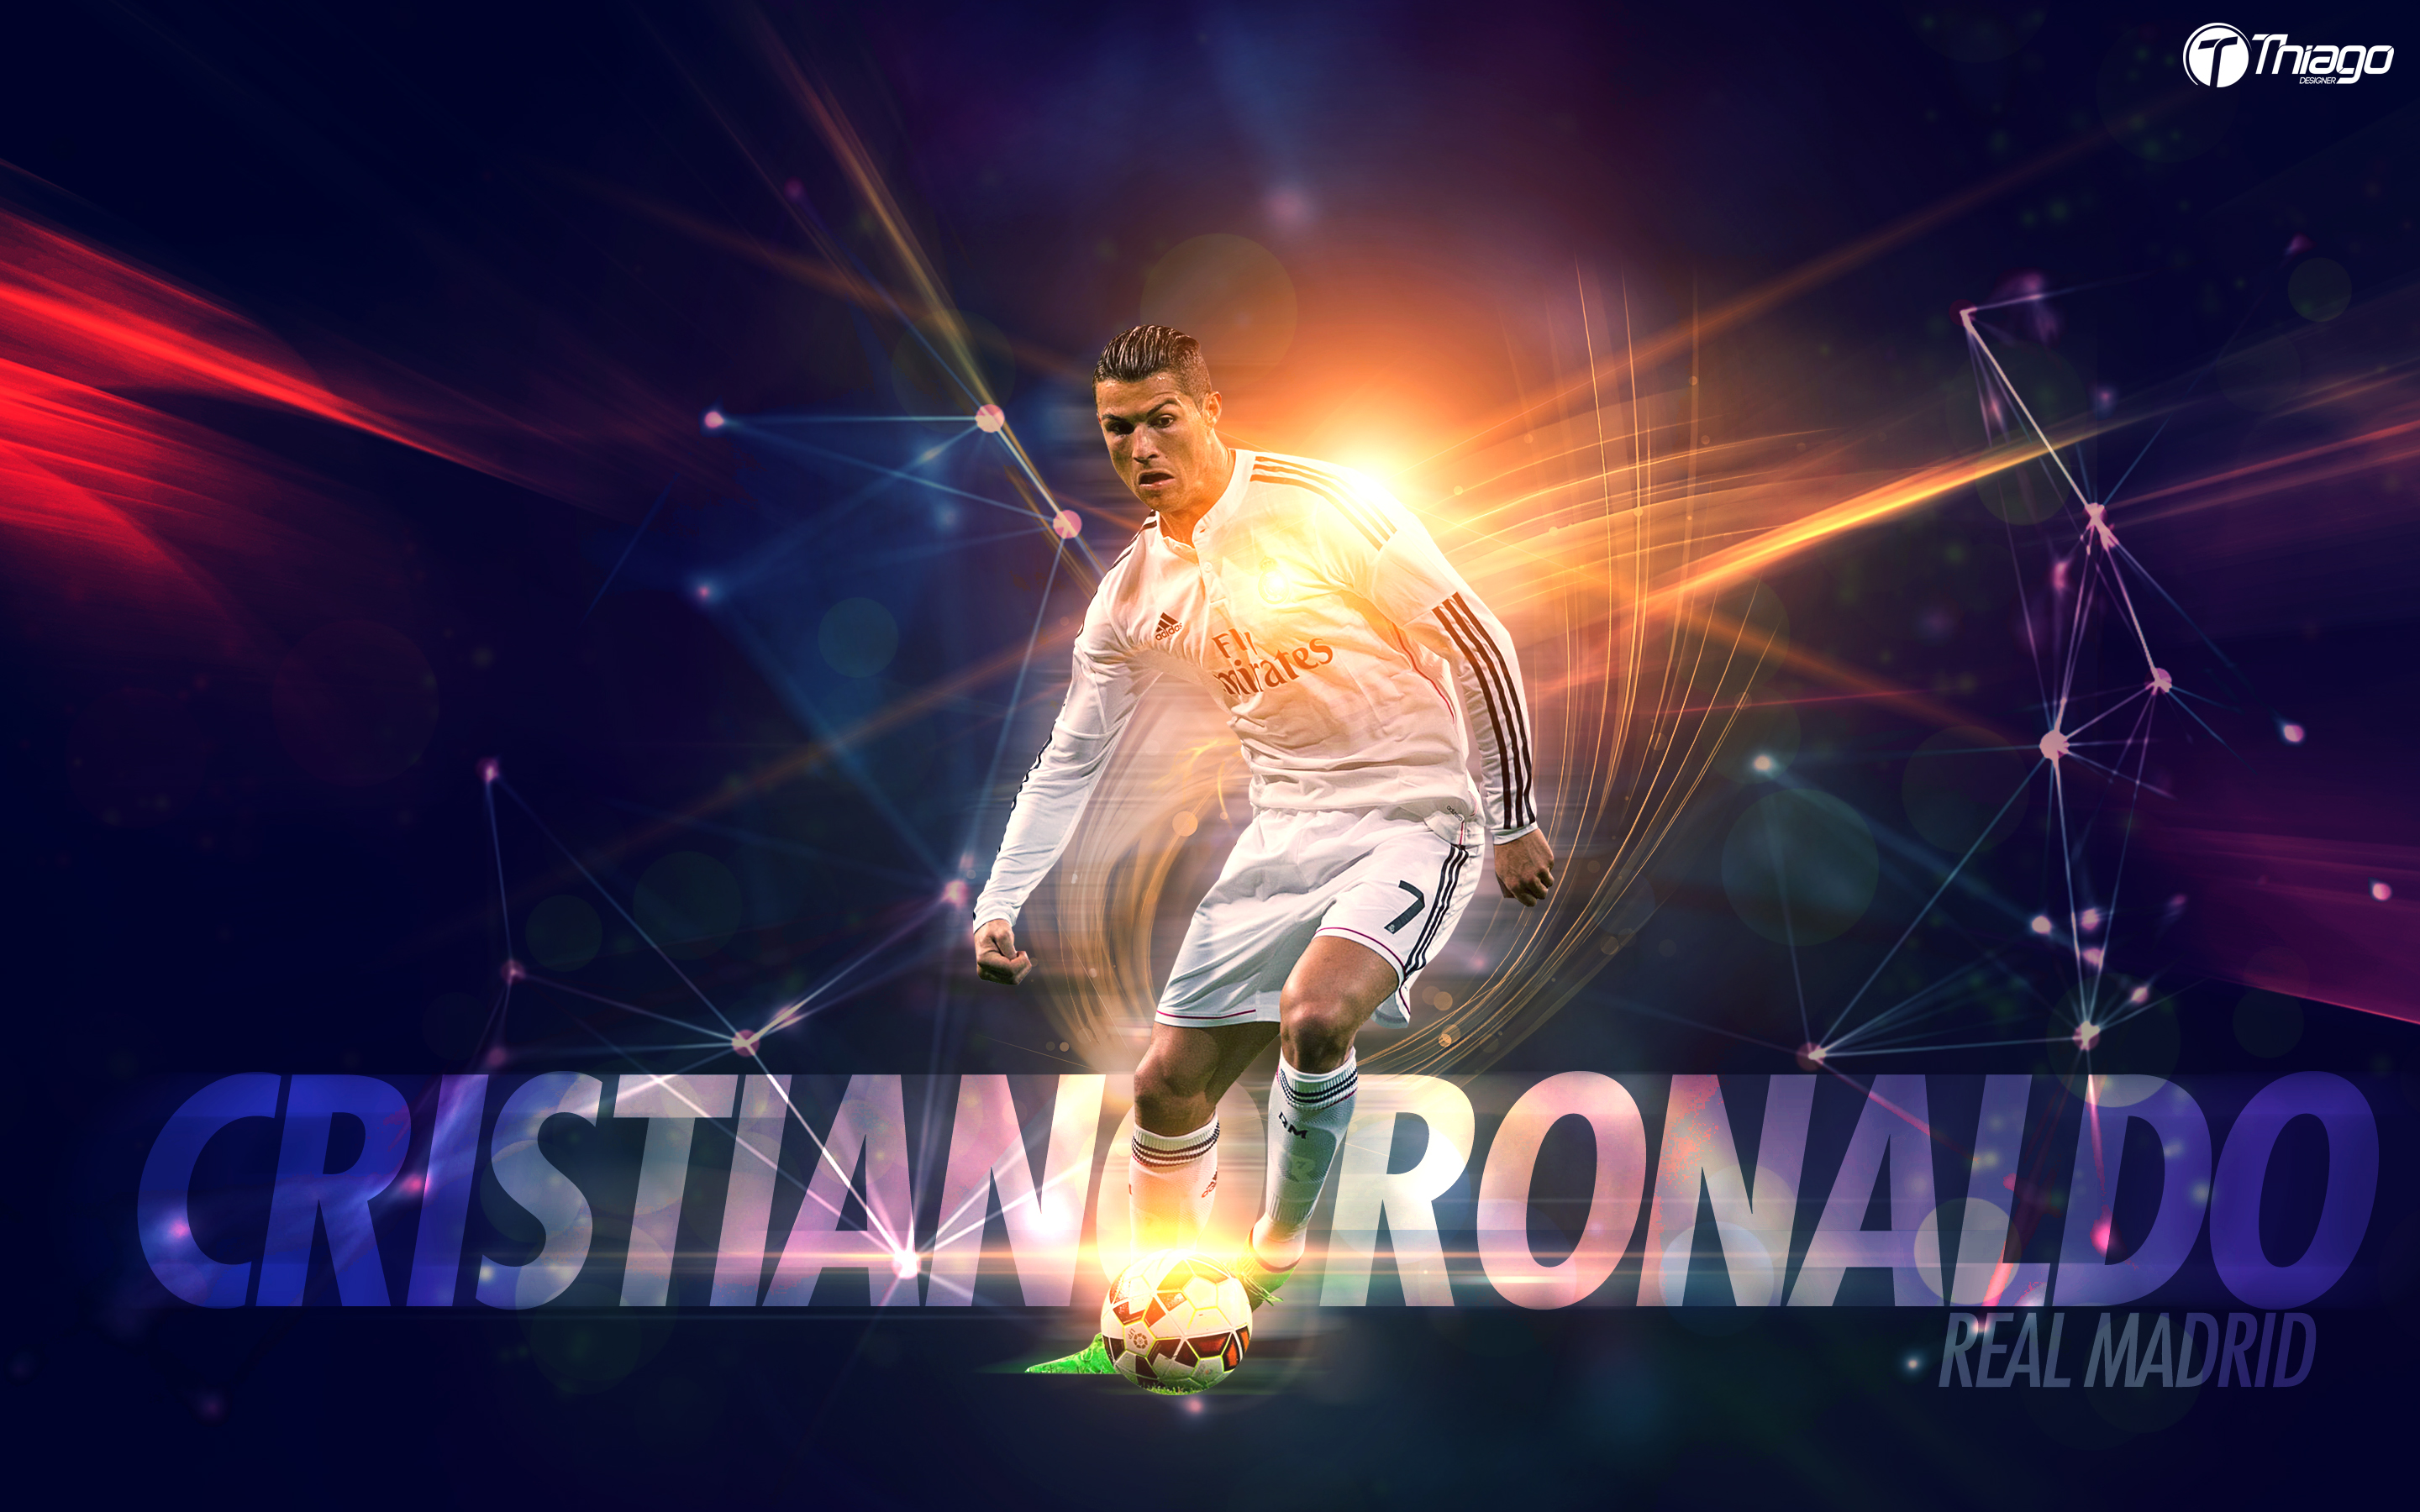 Cristiano Ronaldo's 2014 Best New Wallpapers | Cristiano Ronaldo Fan ...